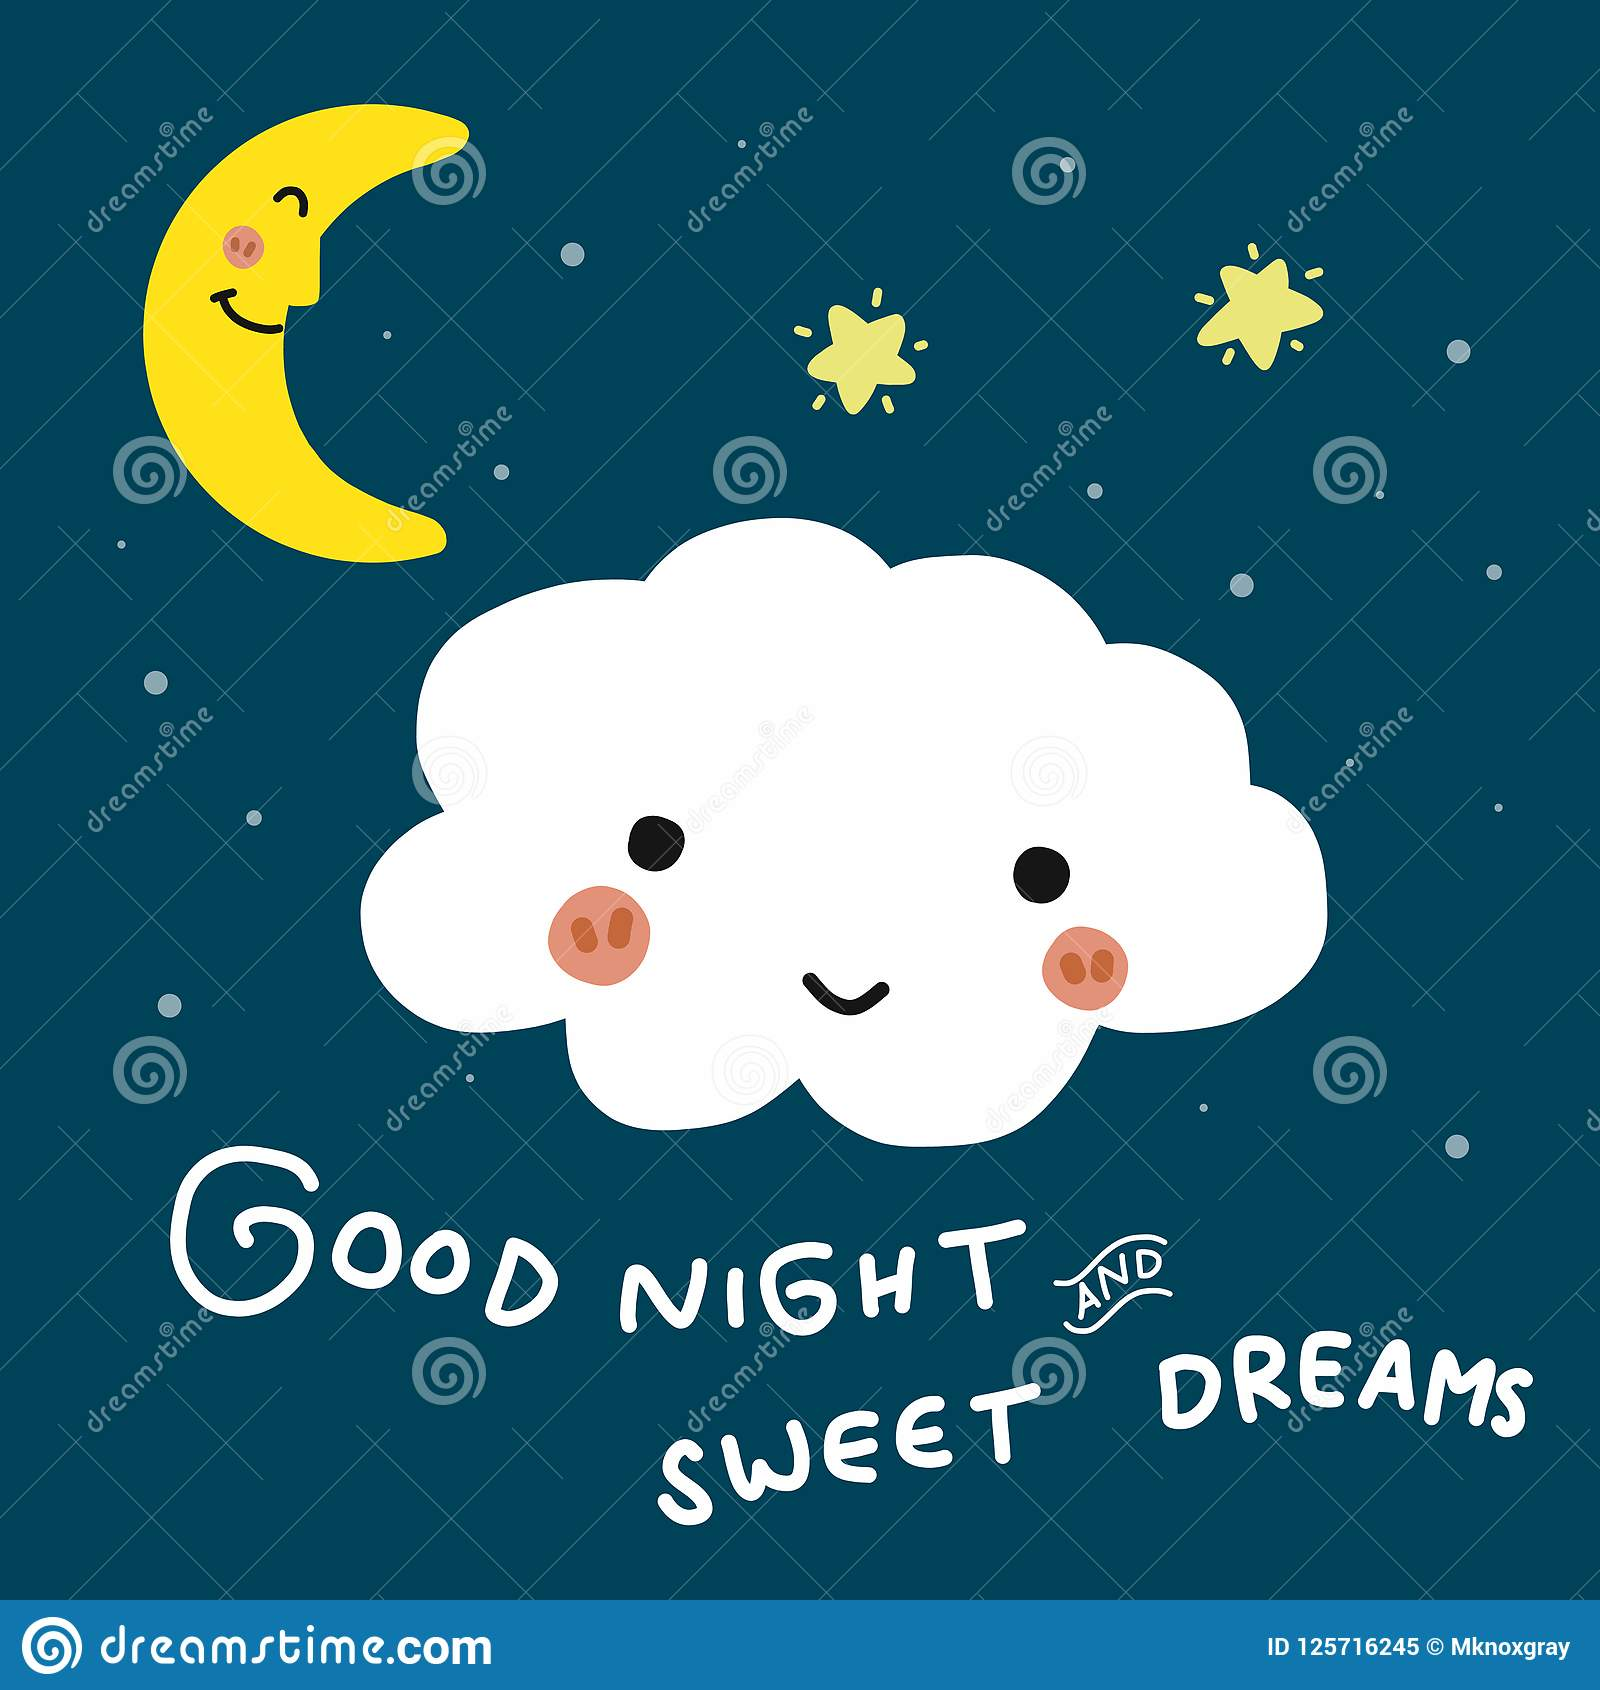 Good Night And Sweet Dreams Cloud Cartoon Vector Doodle Illustration